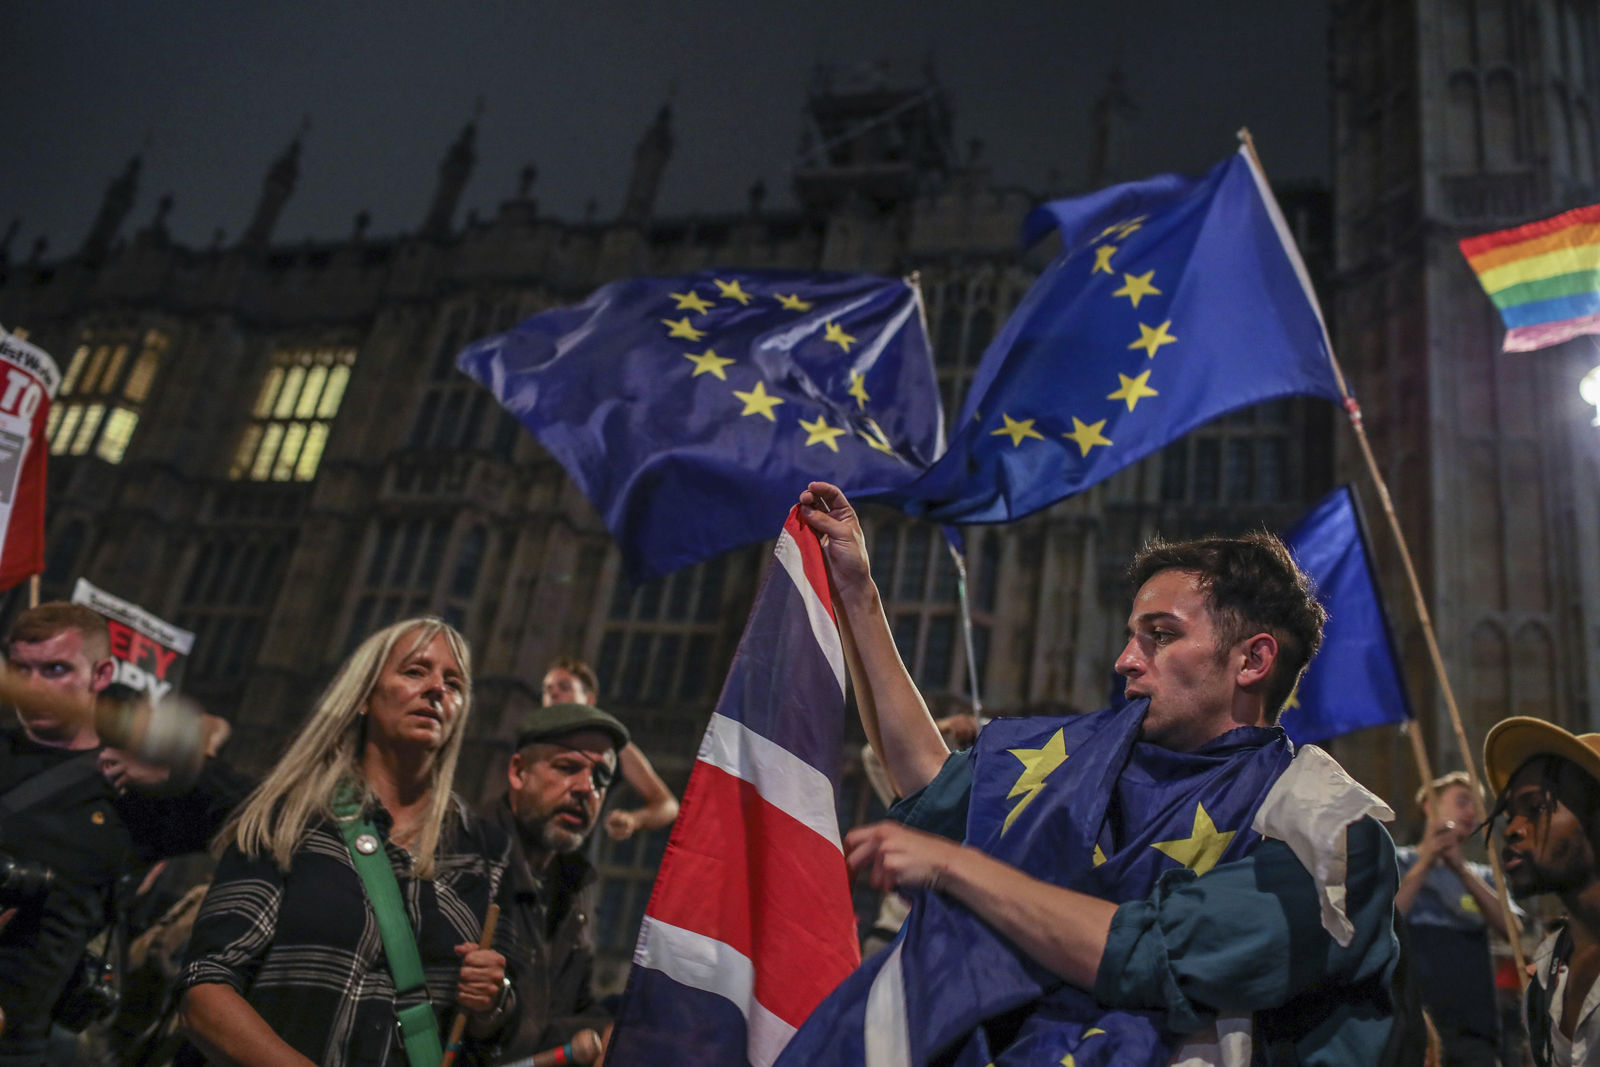 Protesters outside the House of Commons, London, Tuesday, Sept. 3, 2019. British Prime Minister Boris Johnson suffered key defections from his party Tuesday, losing a working majority in Parliament and weakening his position as he tried to prevent lawmakers from blocking his Brexit plans. (AP Photo/Vudi Xhymshiti)